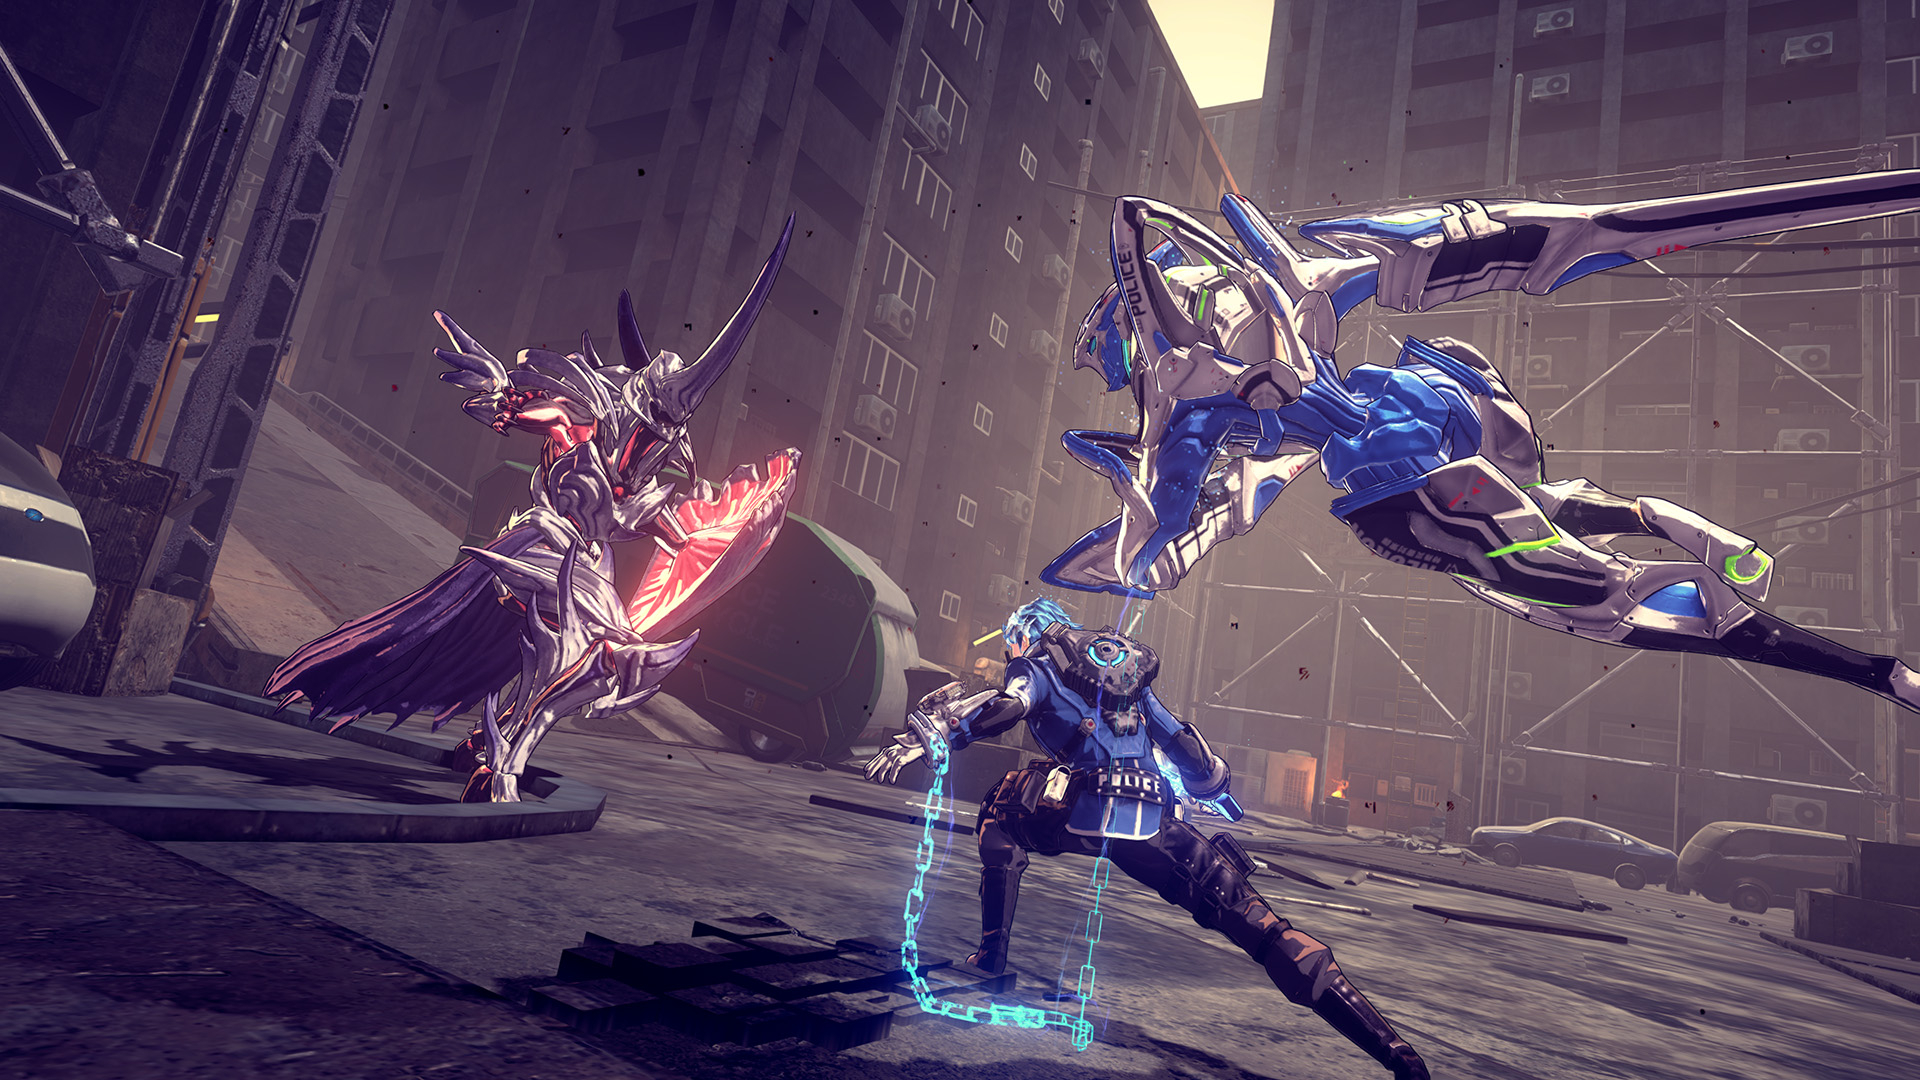 Astral Chain Wallpapers Wallpaper Cave